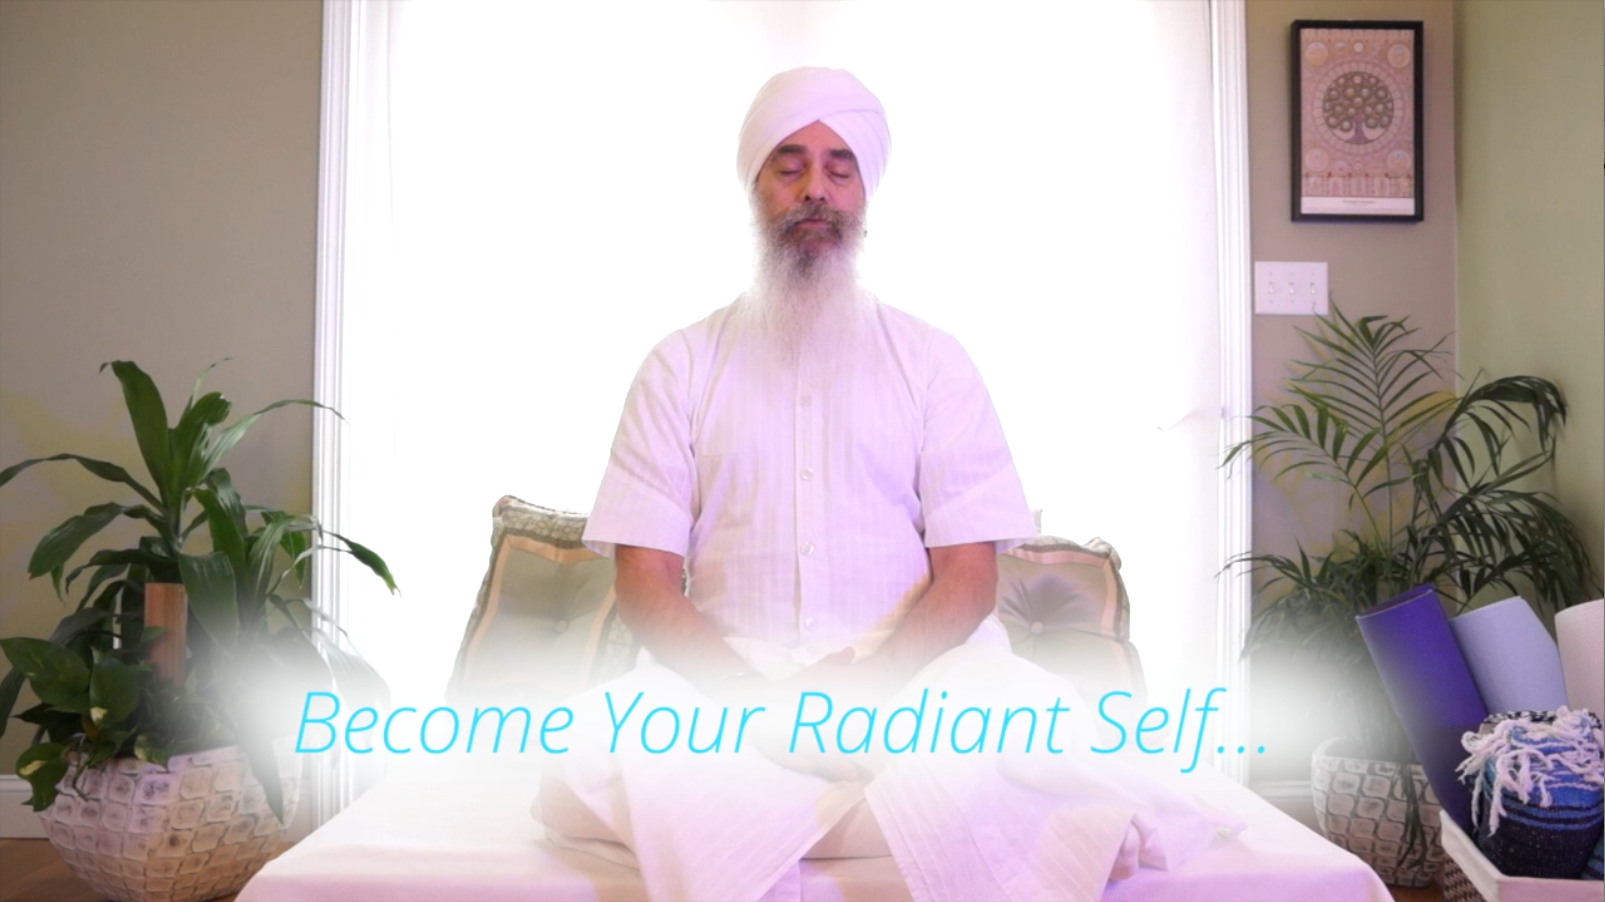 Radiant Self Healing - Cultivate Positive Pride